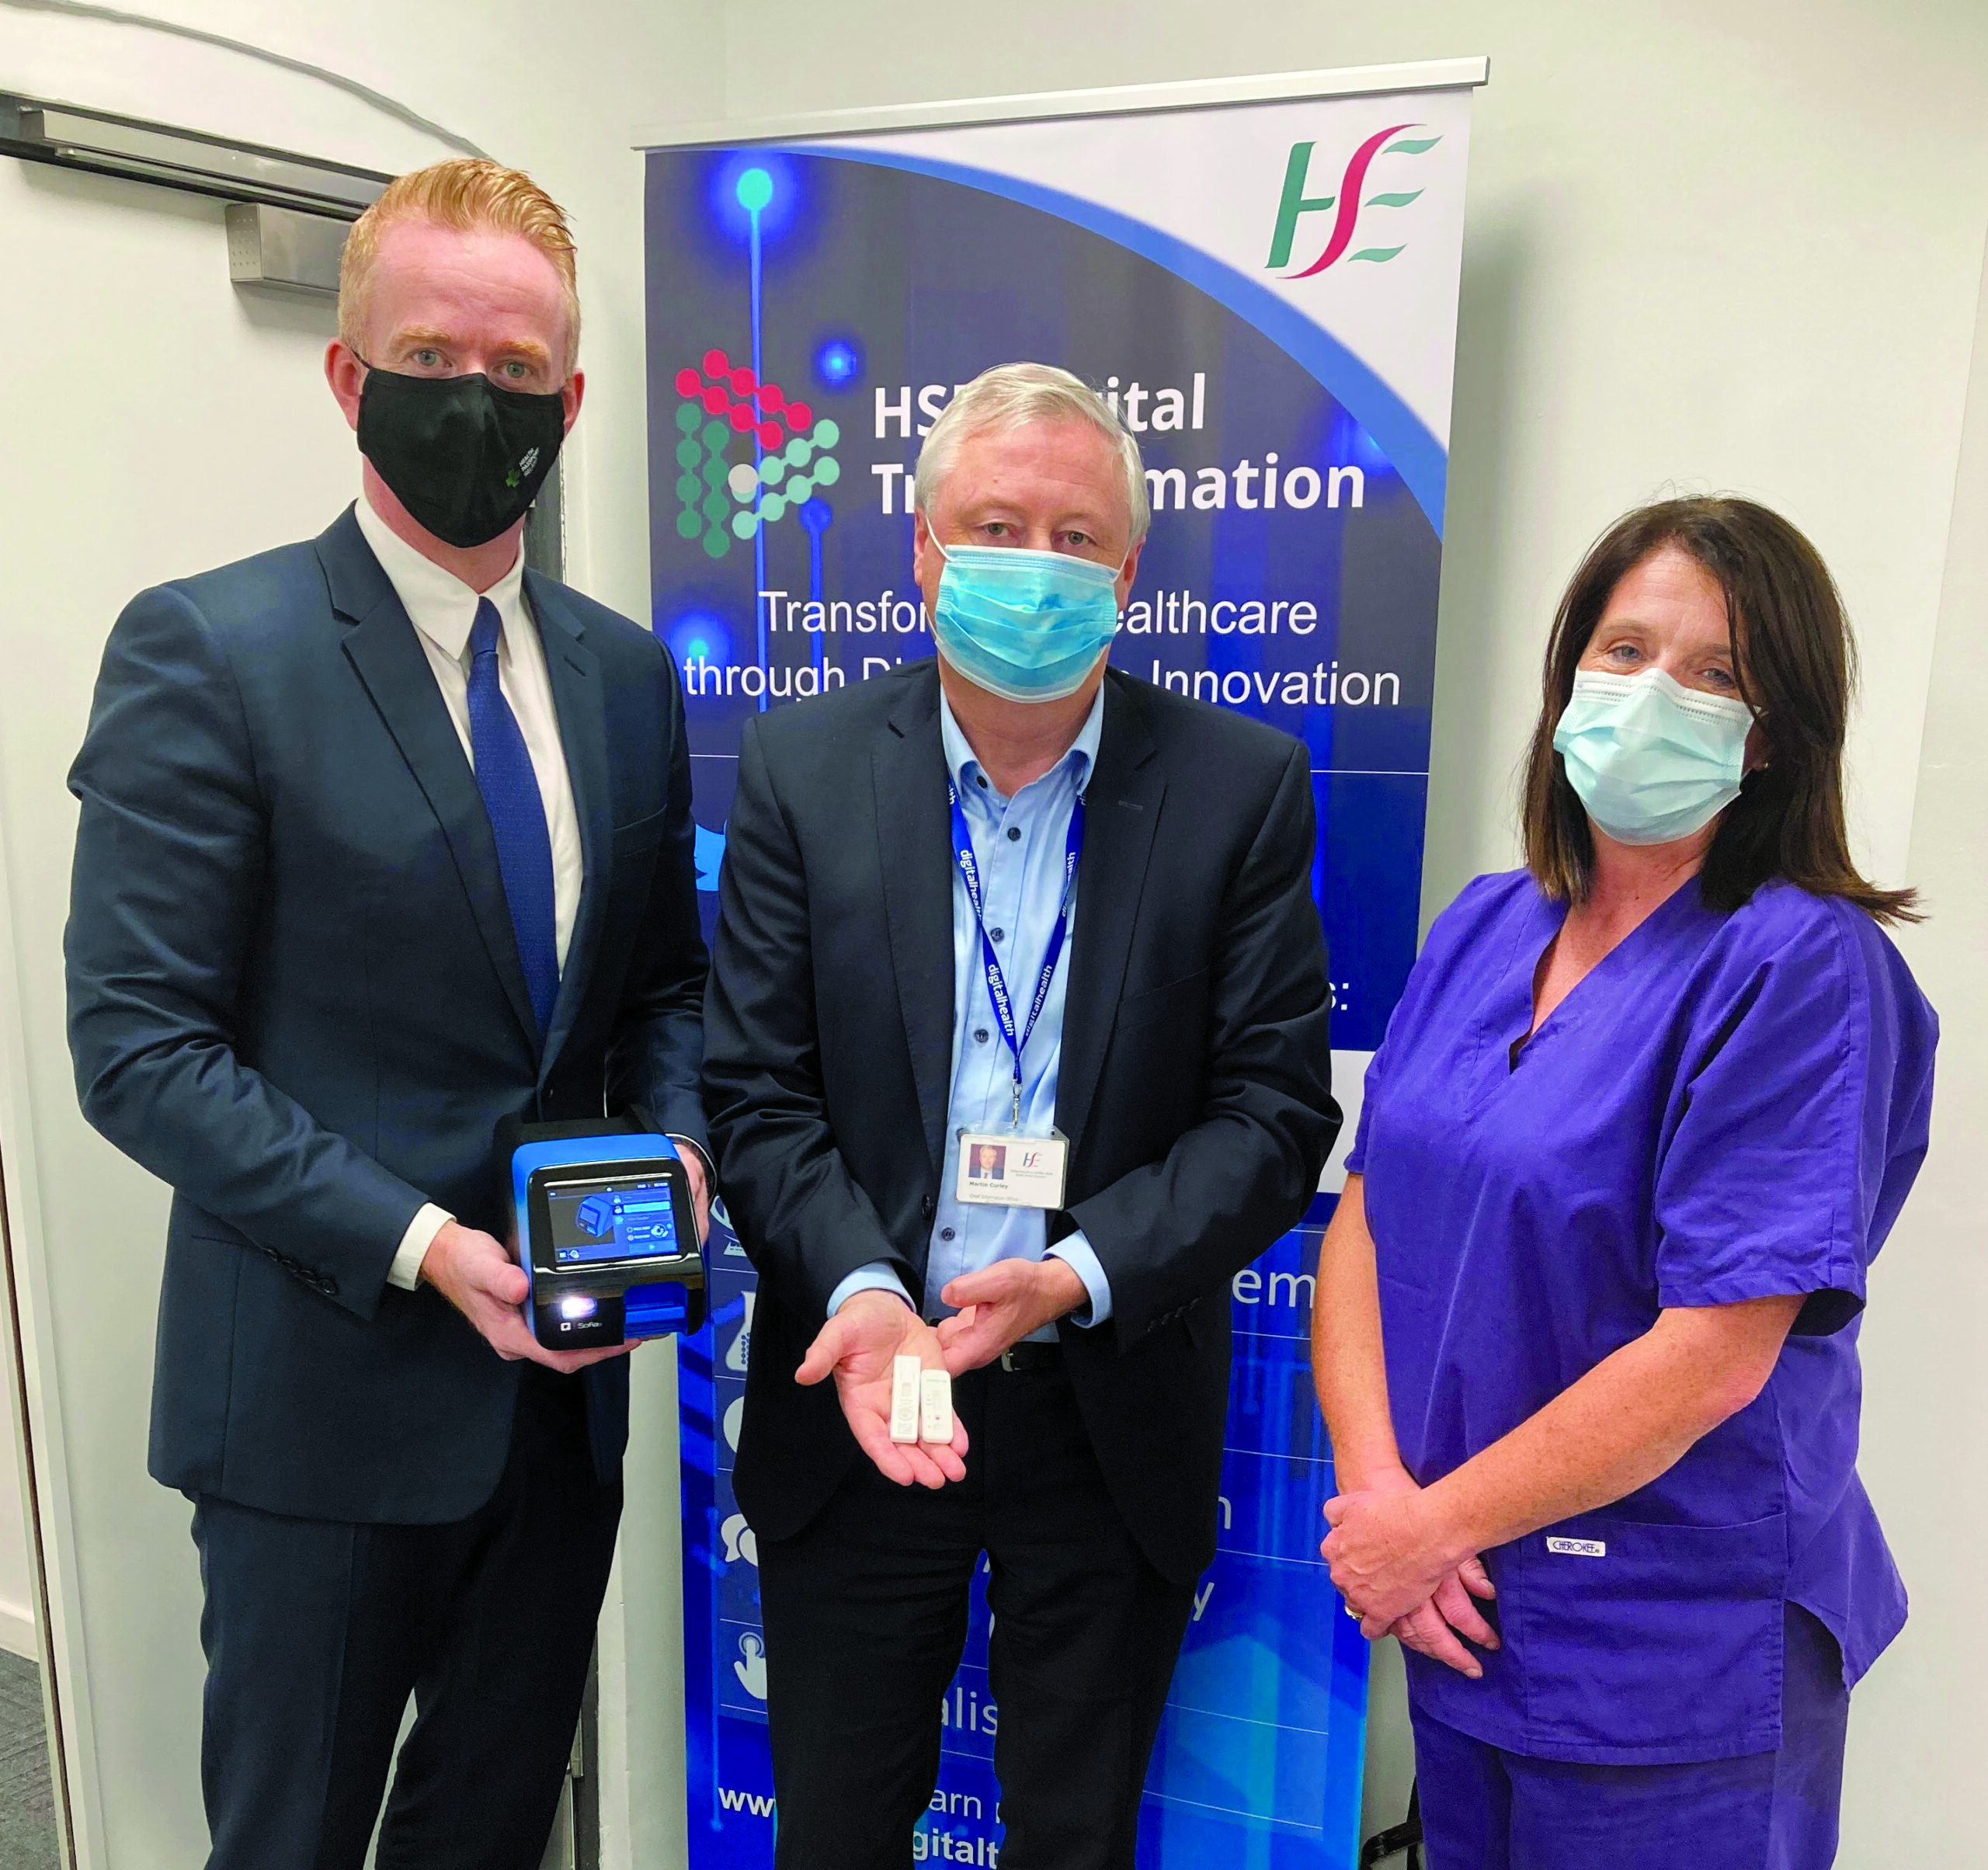 Pictured at the live demonstration of digital platform Health Passport Ireland and following rapid antigen testing are (l to r): Robert Quirke, CEO of ROQU Group, Prof. Martin Curley, Director of Digital Transformation and Open Innovation at the HSE, Liz Connelly, Infection Prevention & Control Nurse